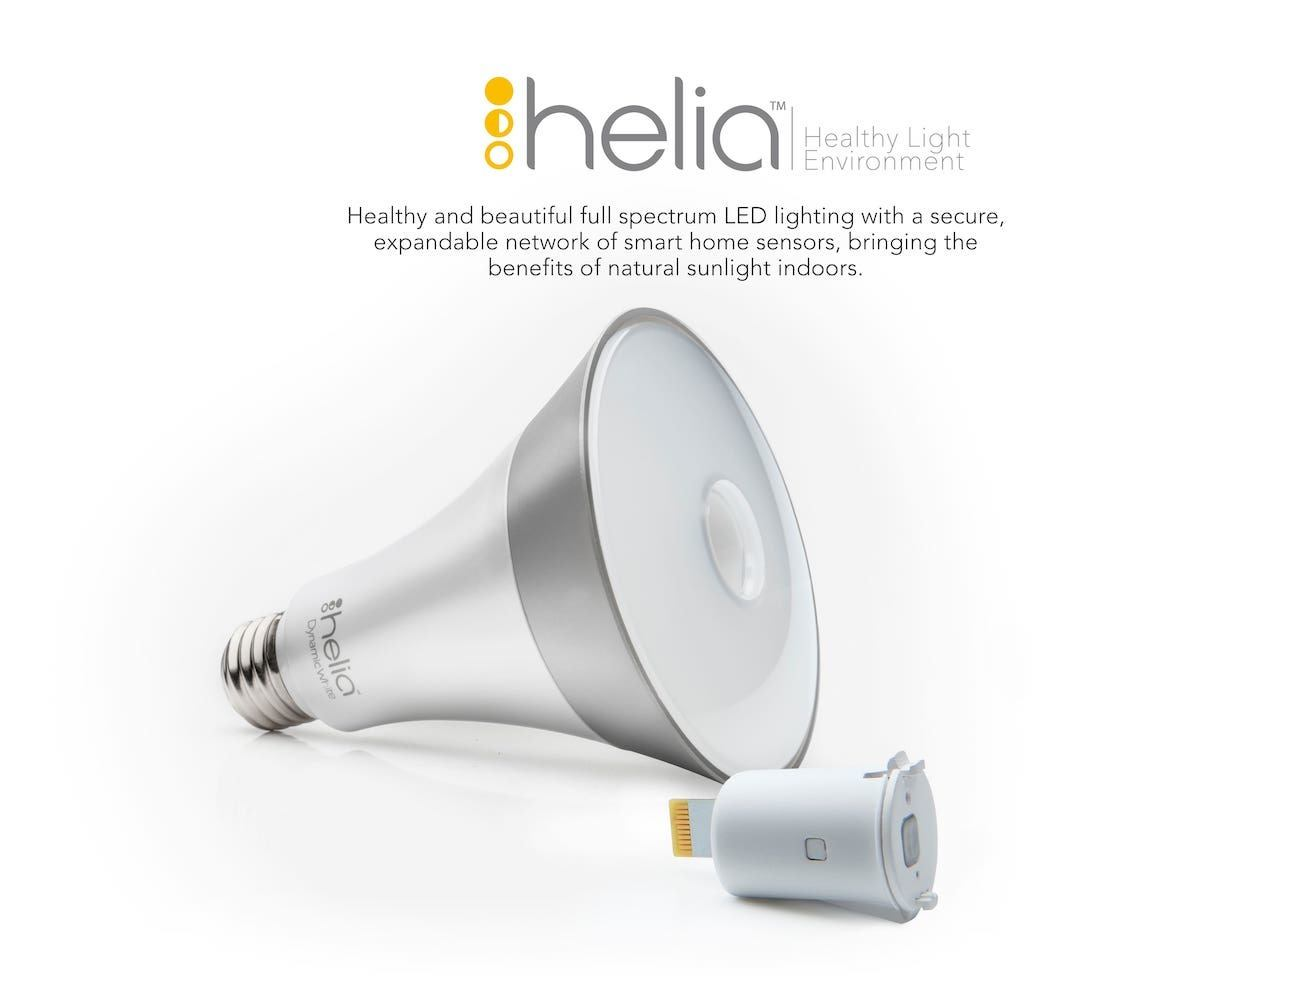 Helia Smart Bulb by Soraa